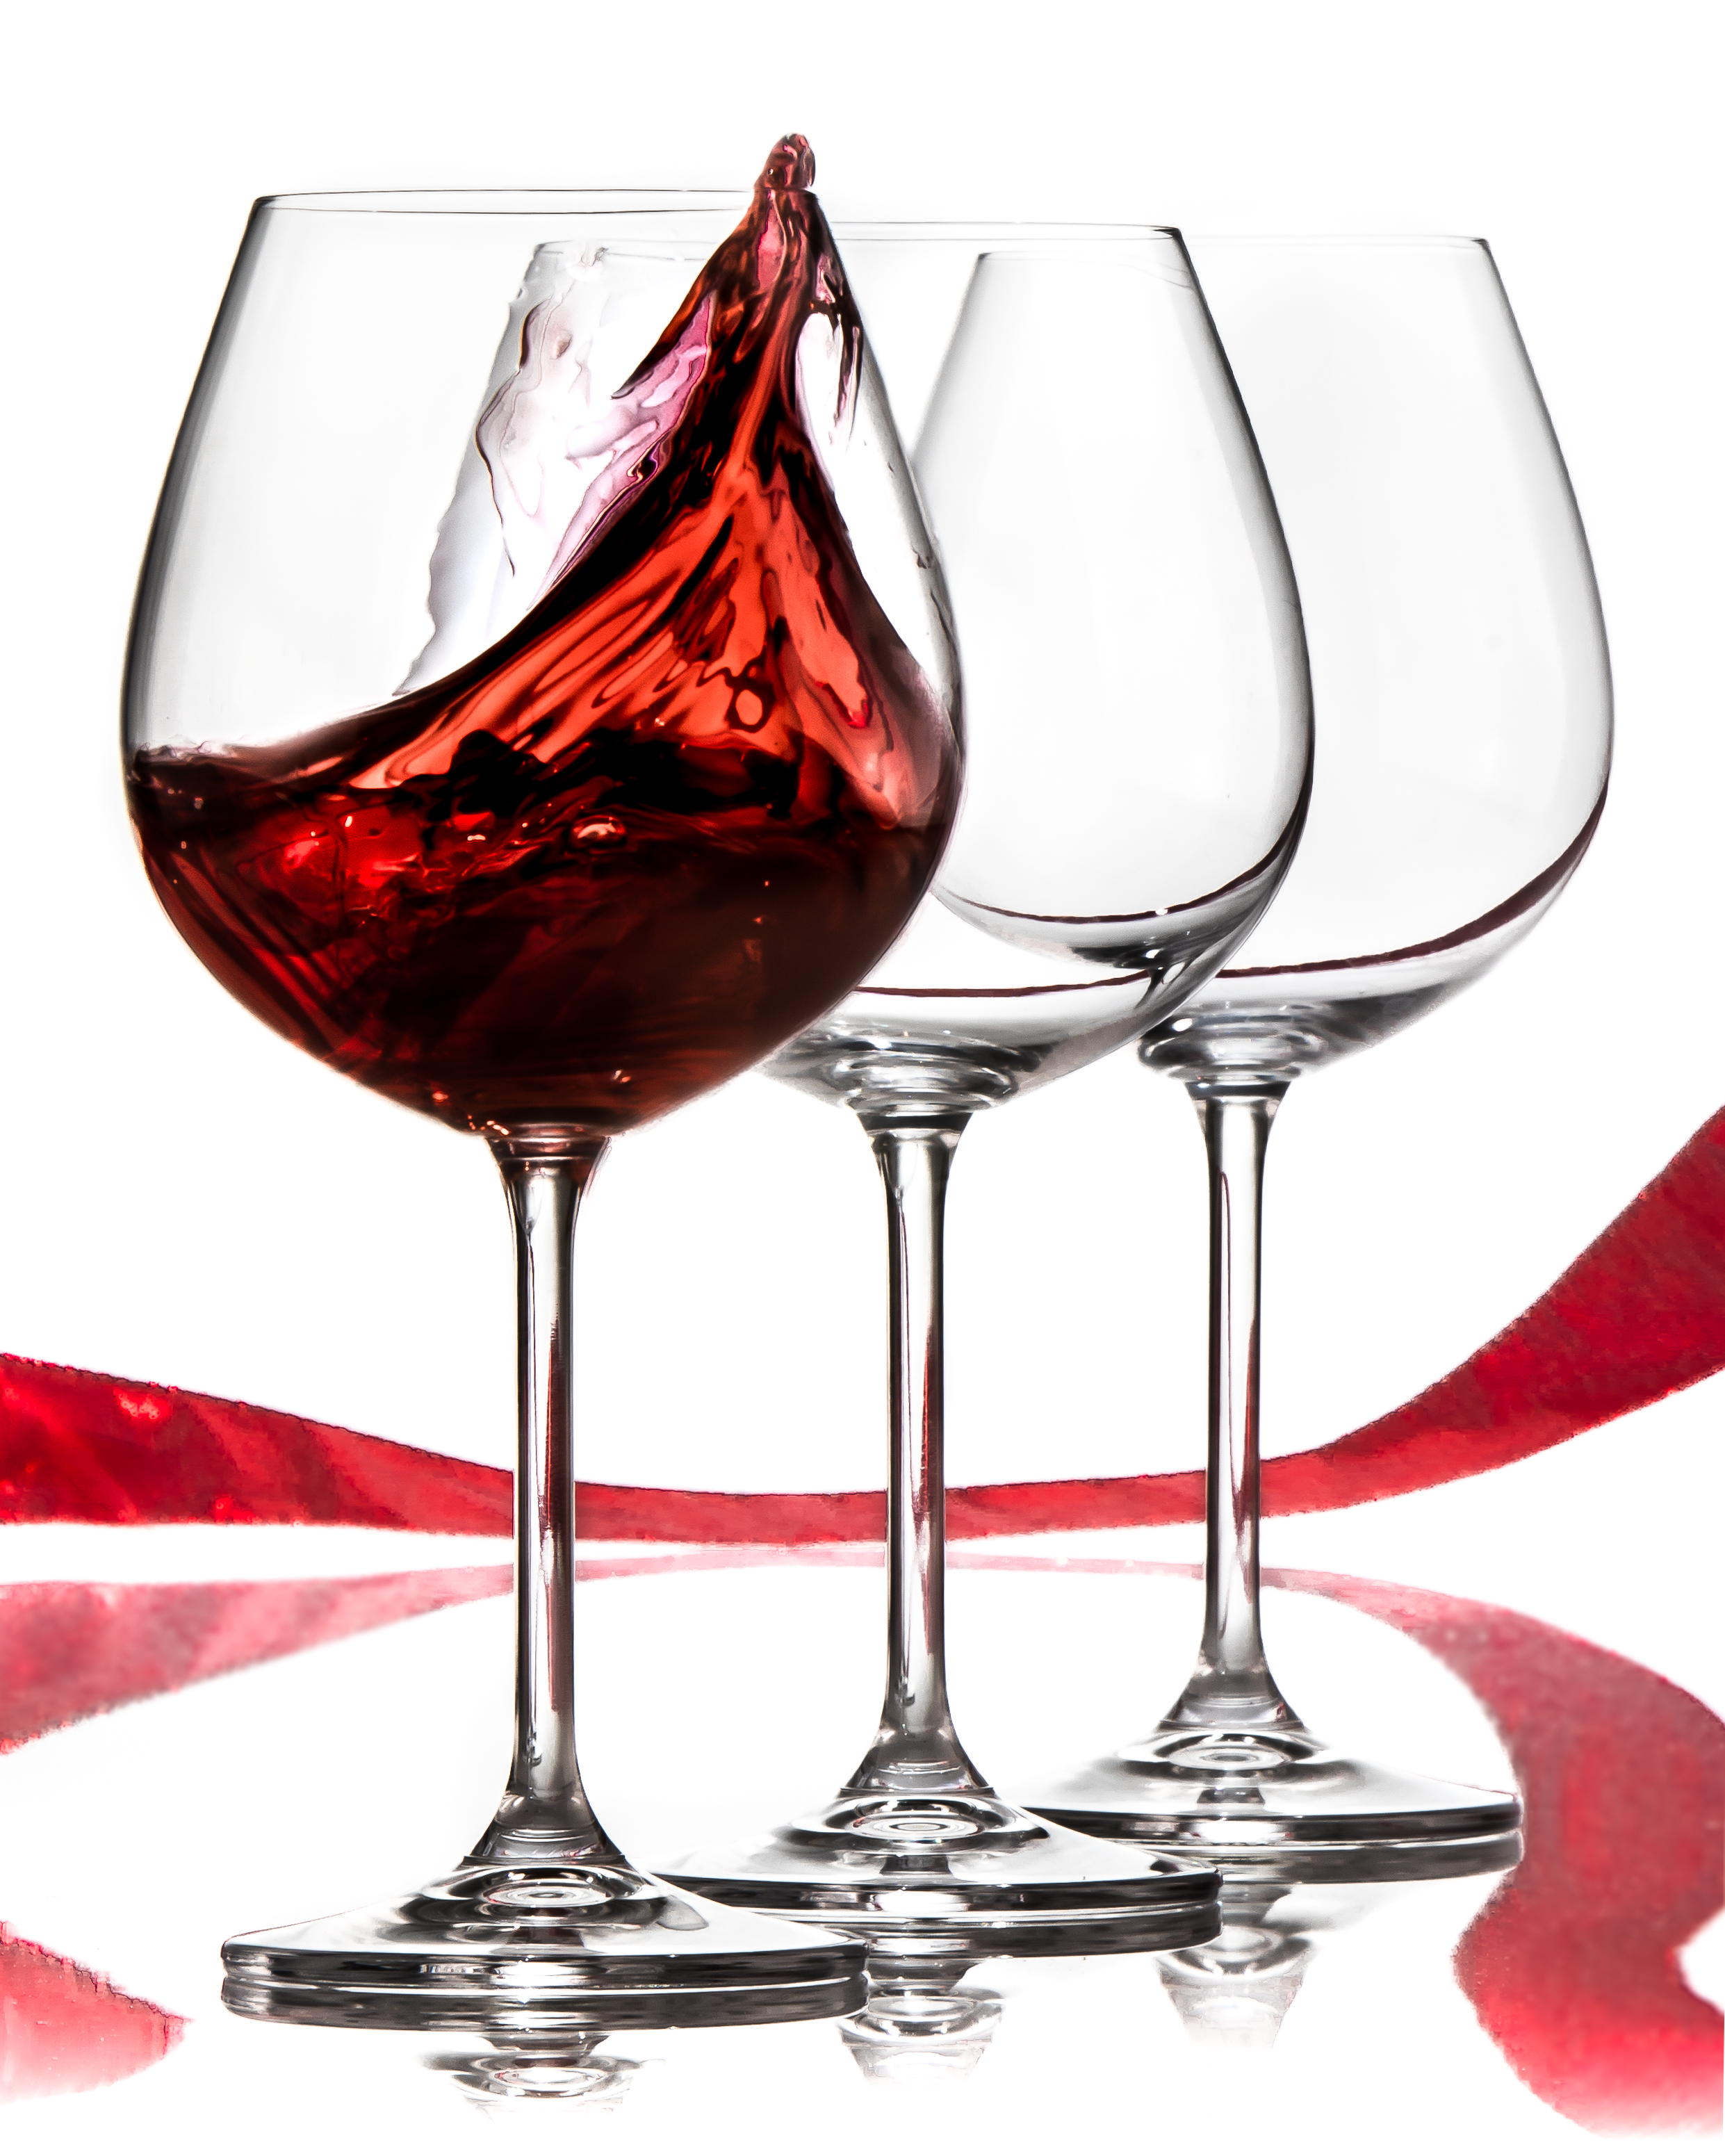 Crystal Stemware Wine Glasses Titanium Takes Crystal Wine Glasses To A New Level